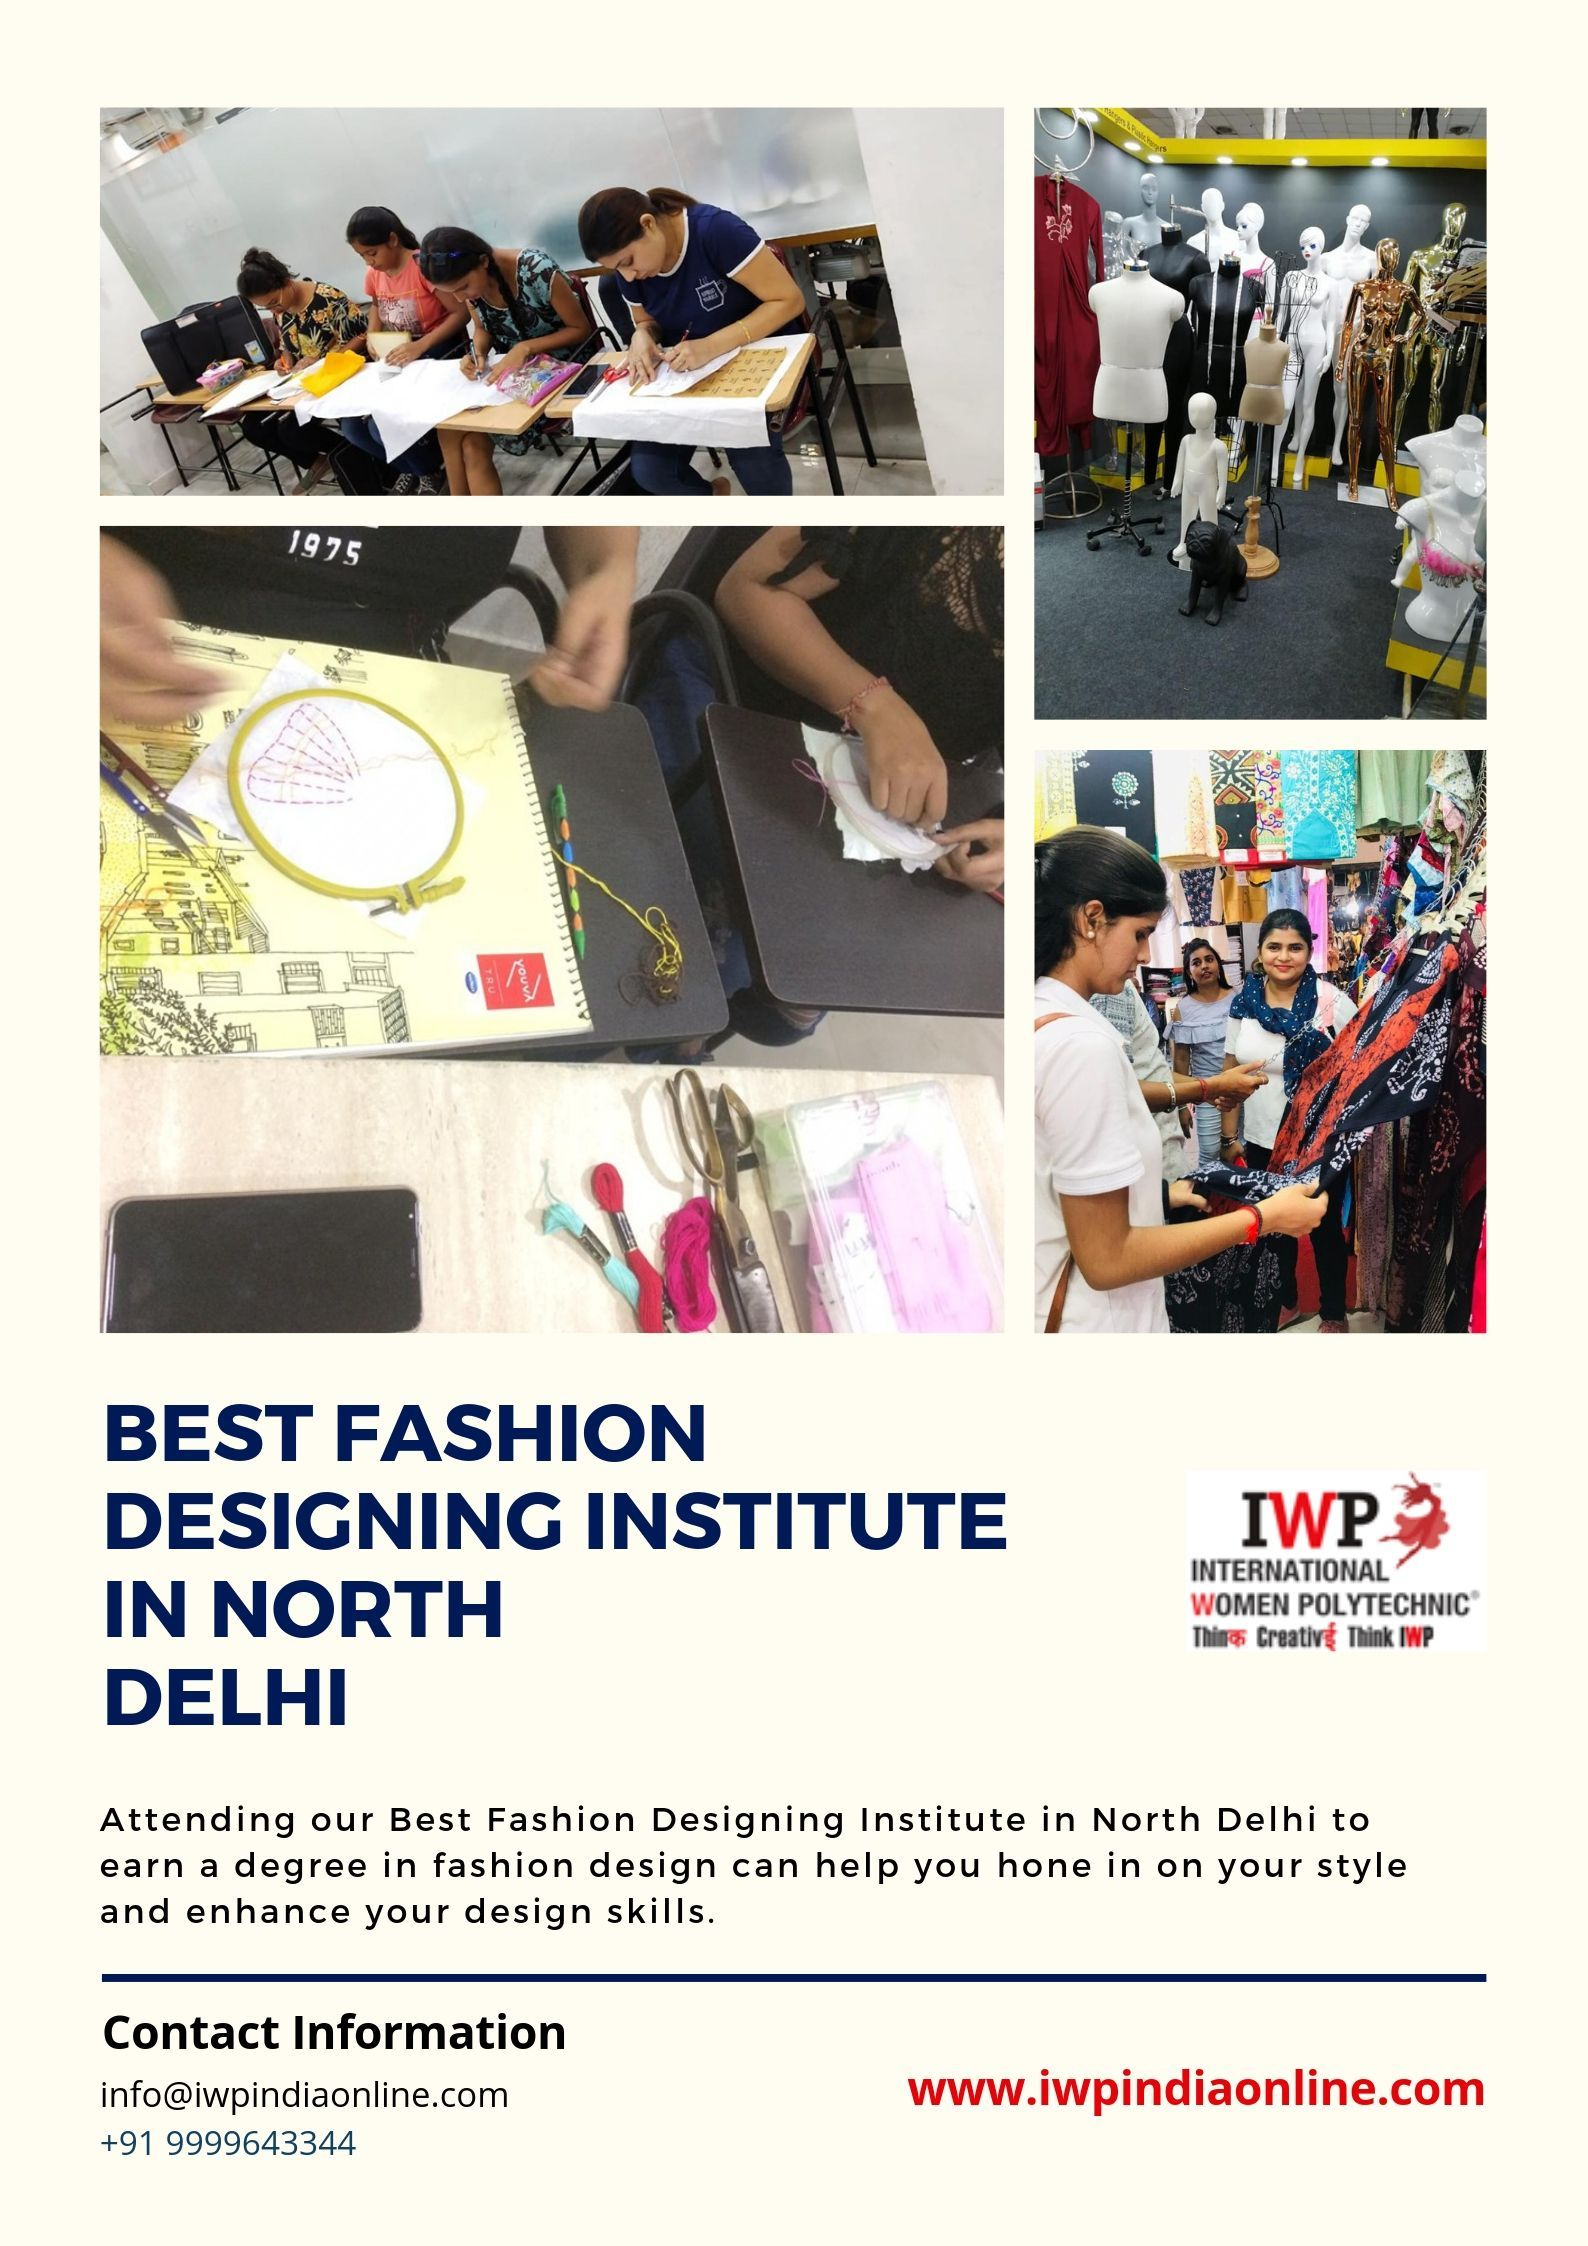 If You Are Willing To Join Best Fashion Designing Institute In North Delhi For A Bachelors Or Masters Degree Join Iwp Fashion Designing Institute Model Town